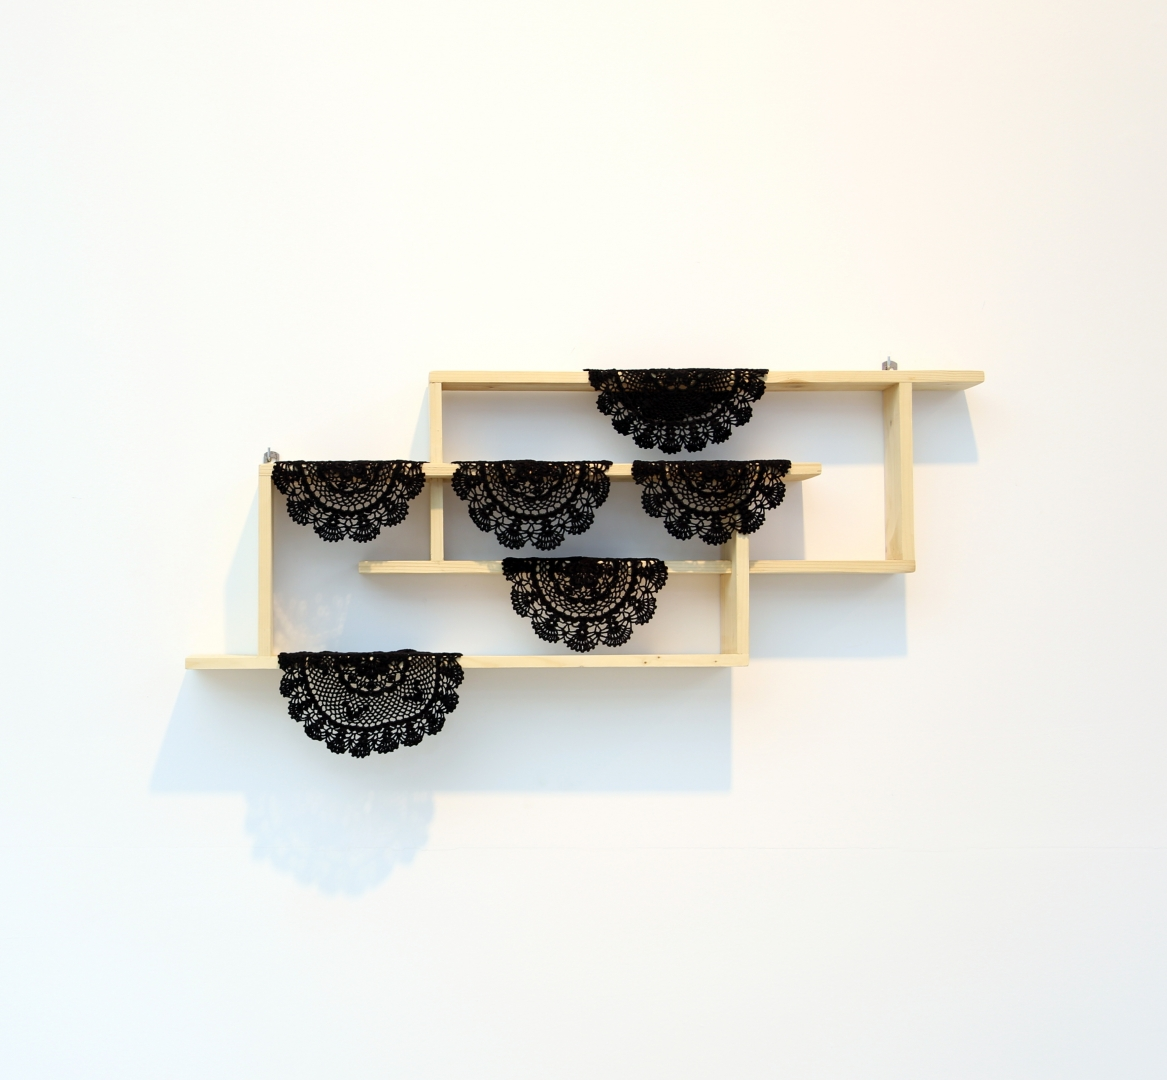 Reproduction of a shelf (like a negative) in Sour Tits, CCF, Beirut, 2013